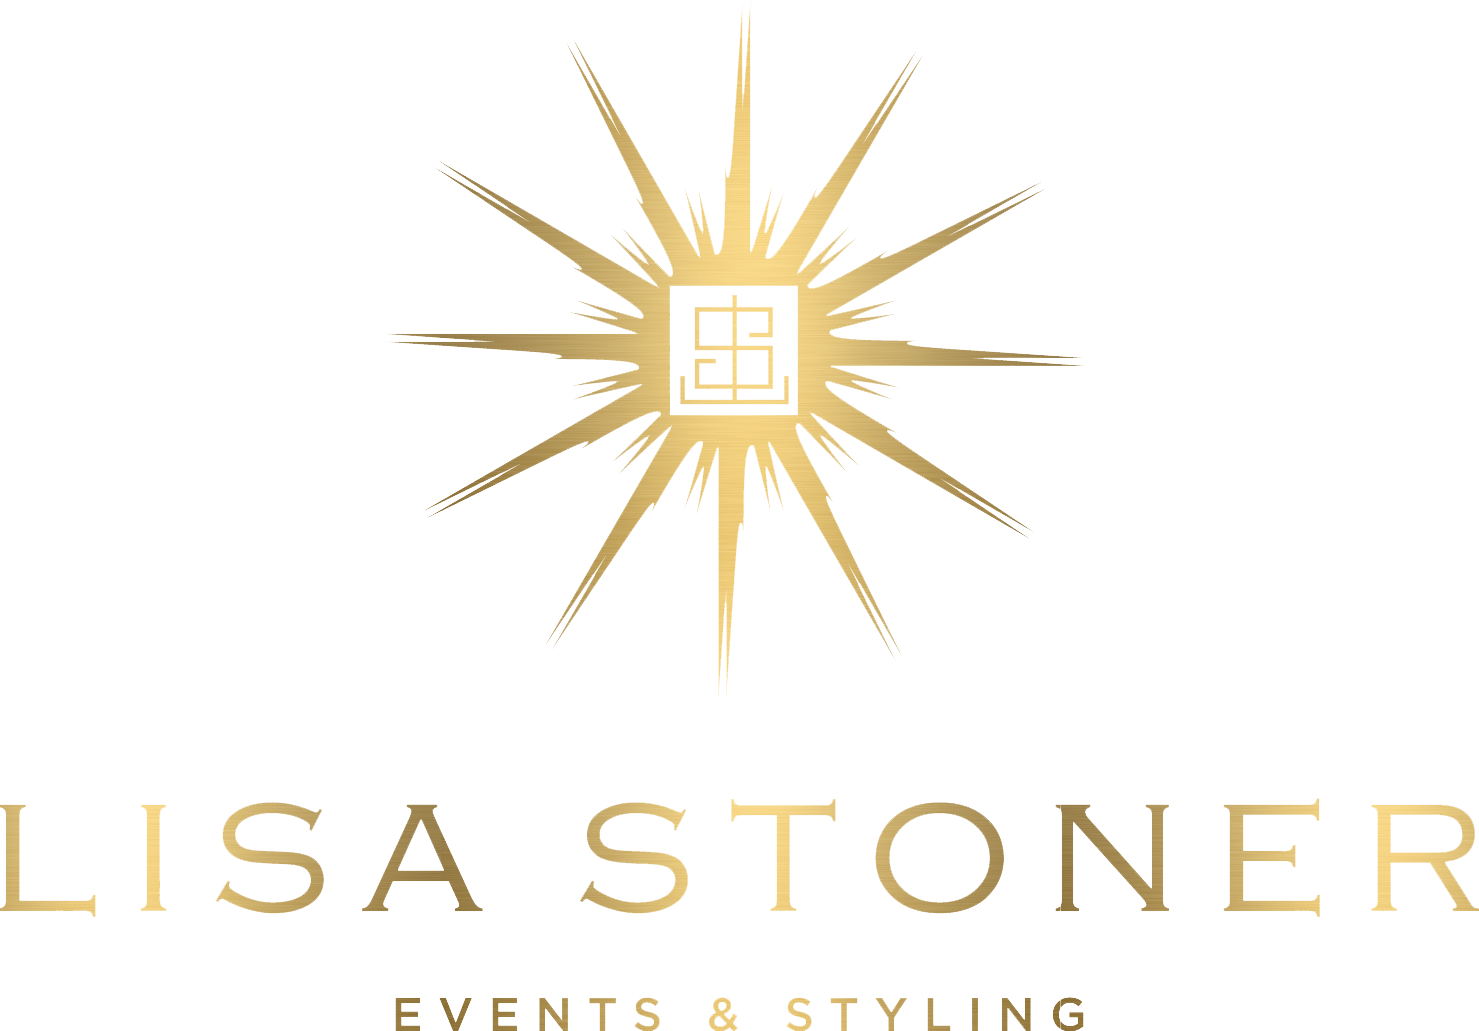 Lisa Stoner Events